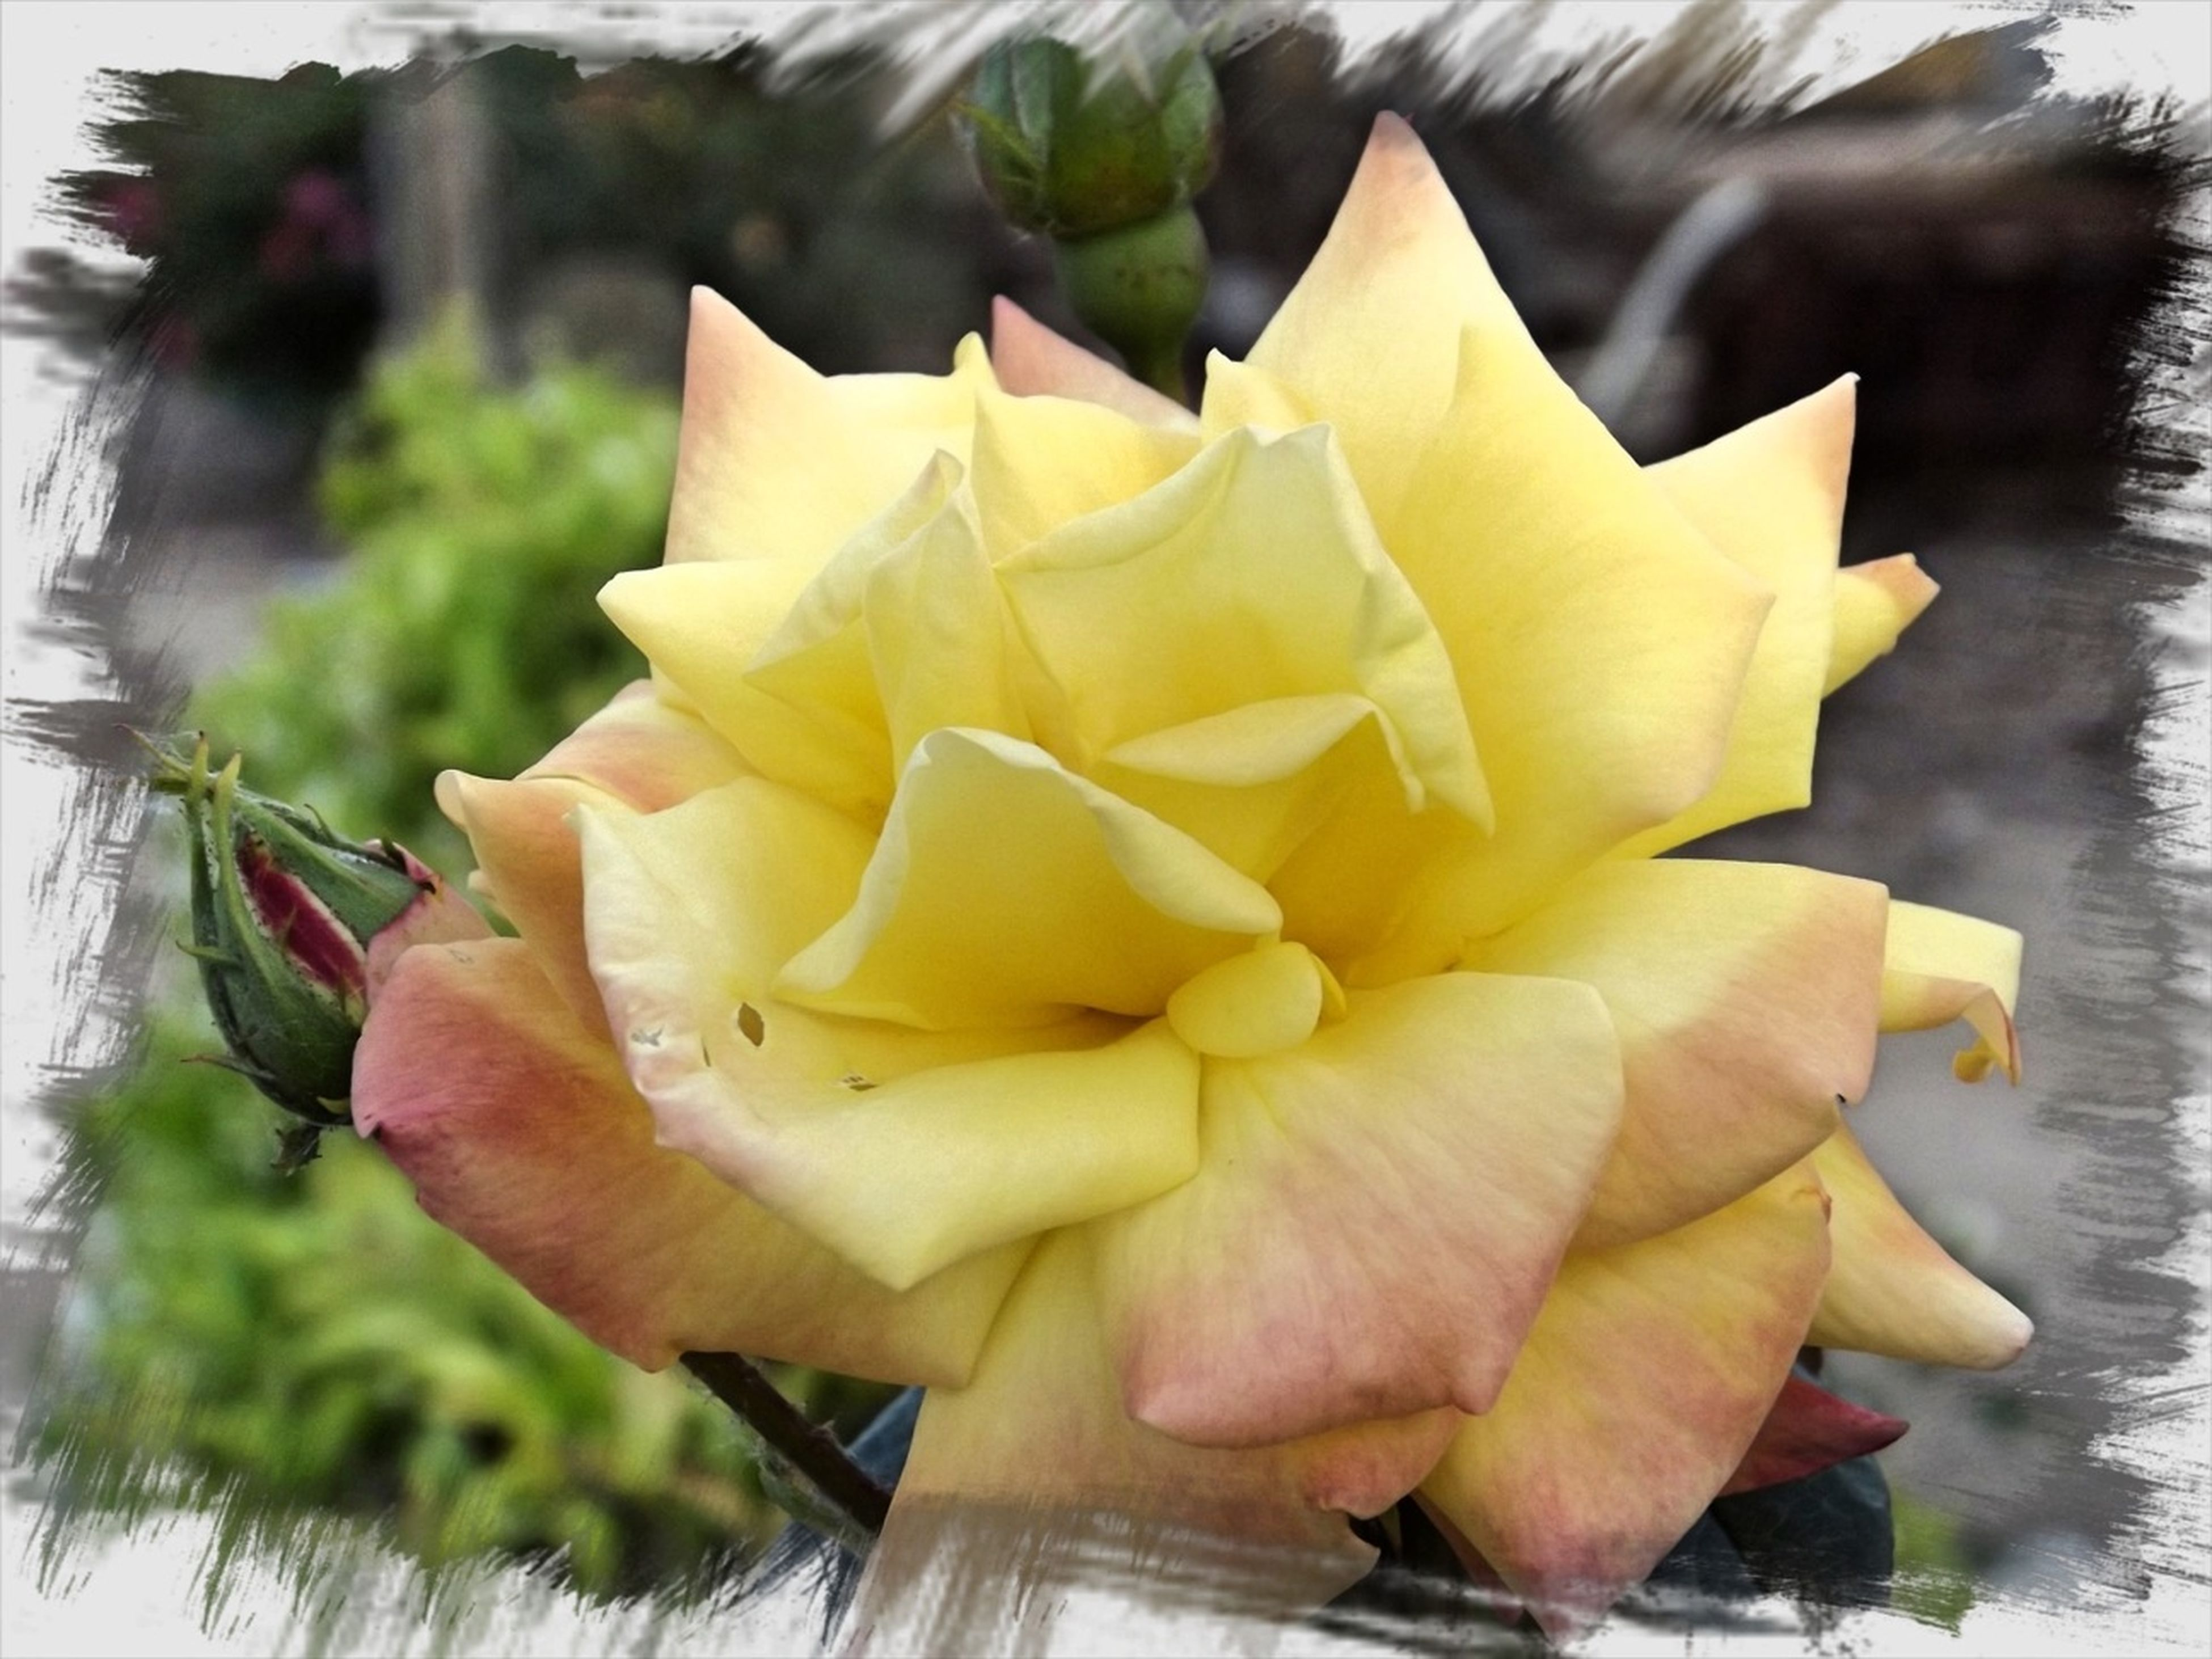 flower, petal, flower head, freshness, fragility, rose - flower, single flower, close-up, yellow, beauty in nature, growth, nature, plant, focus on foreground, blooming, rose, leaf, no people, in bloom, indoors